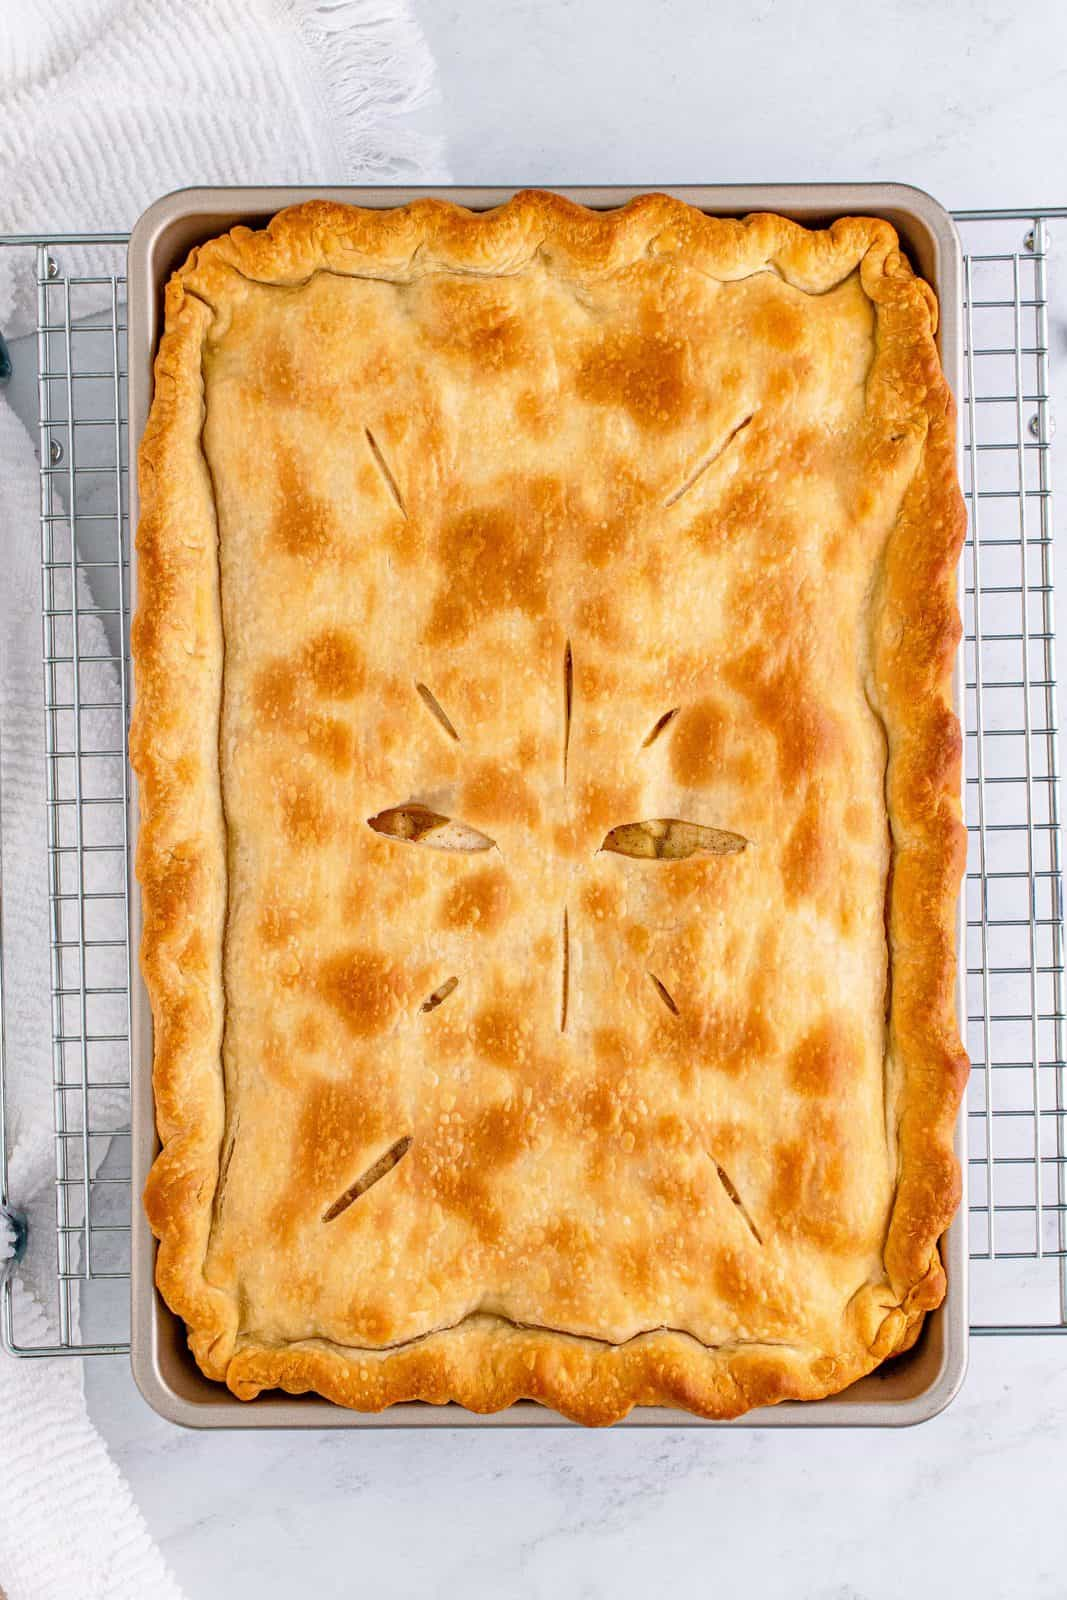 Baked Apple Slab Pie baked and cooling on wire rack.